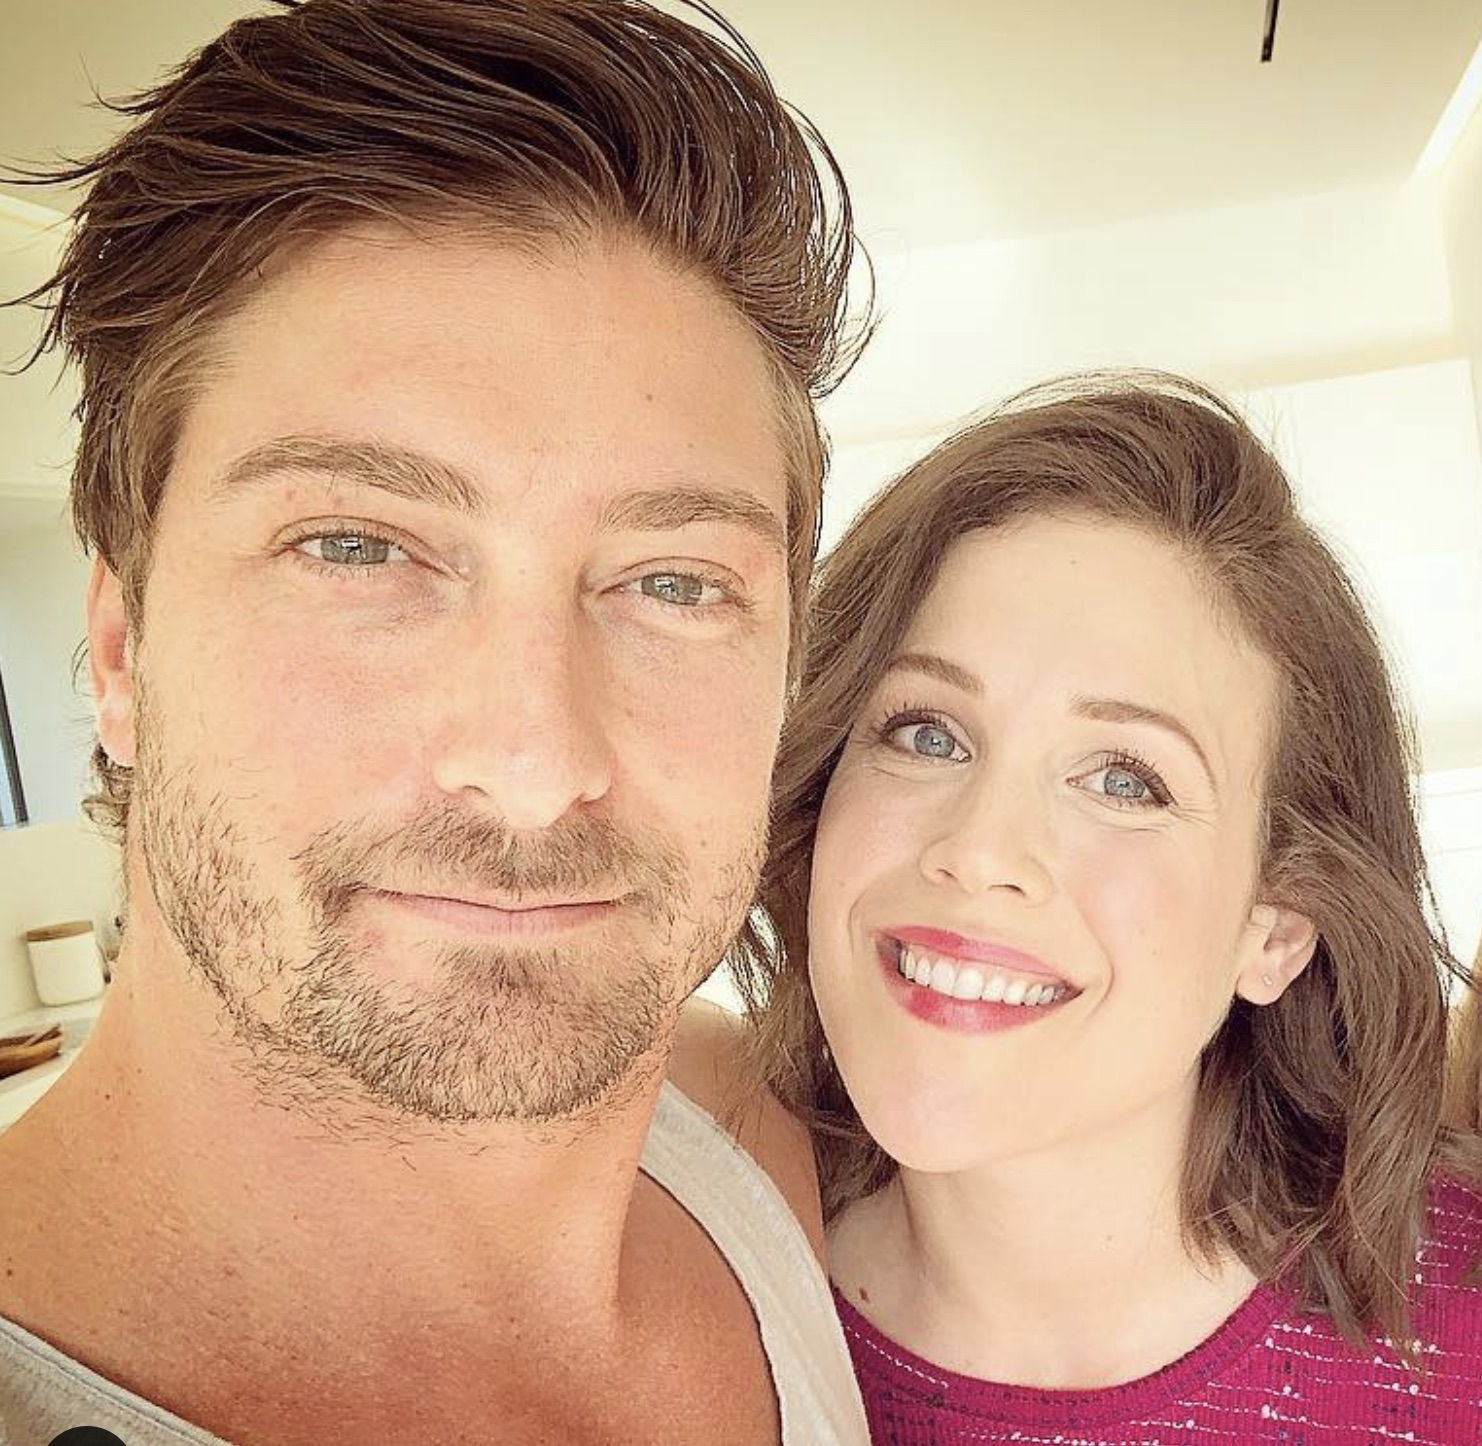 Daniel Lissing, Erin Krakow, When Calls The Heart-https://www.instagram.com/p/BnR55wCHrr8/